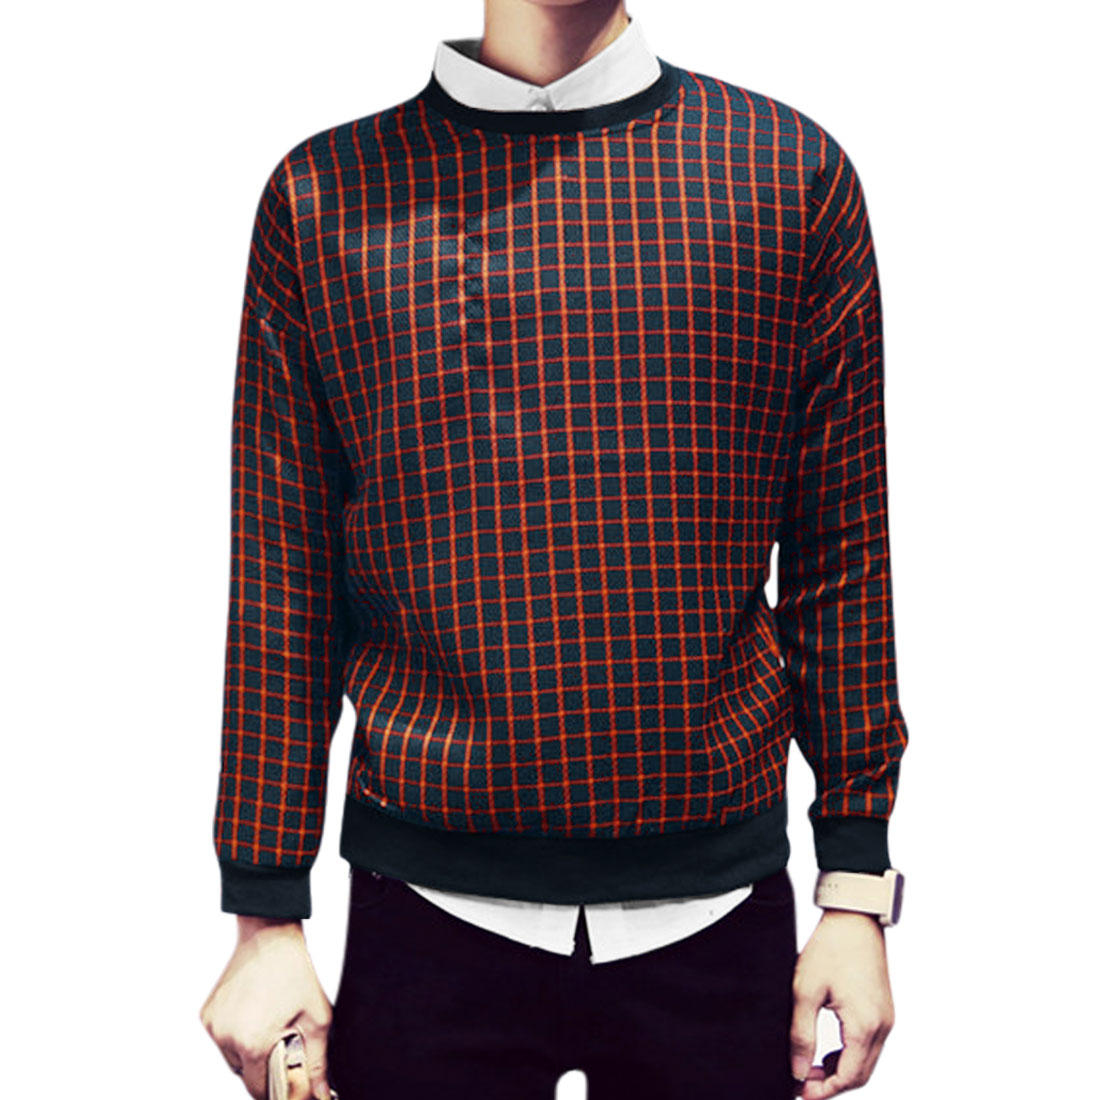 Azzuro's Crew Neck Long Sleeves Pullover Plaids Print Leisure Sweatshirt